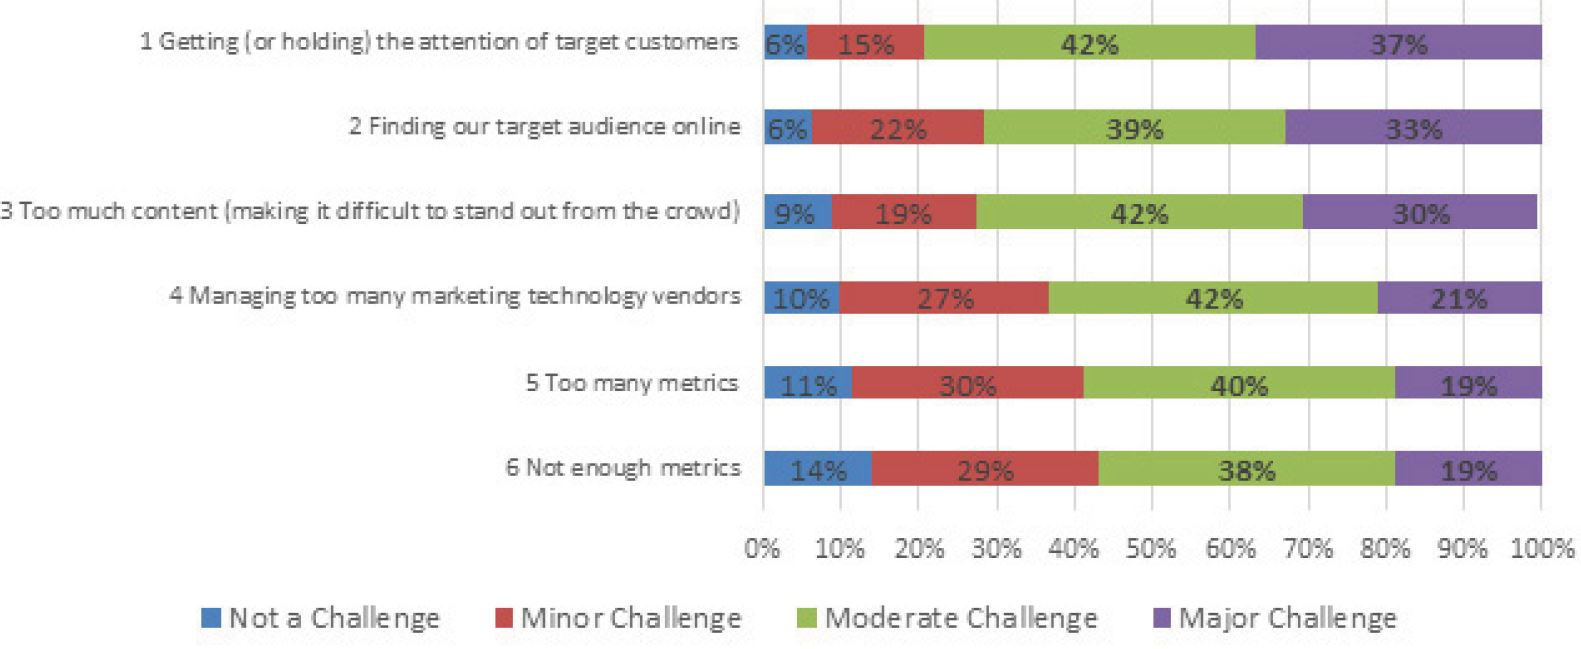 key-challenges-identified-by-marketing-executives